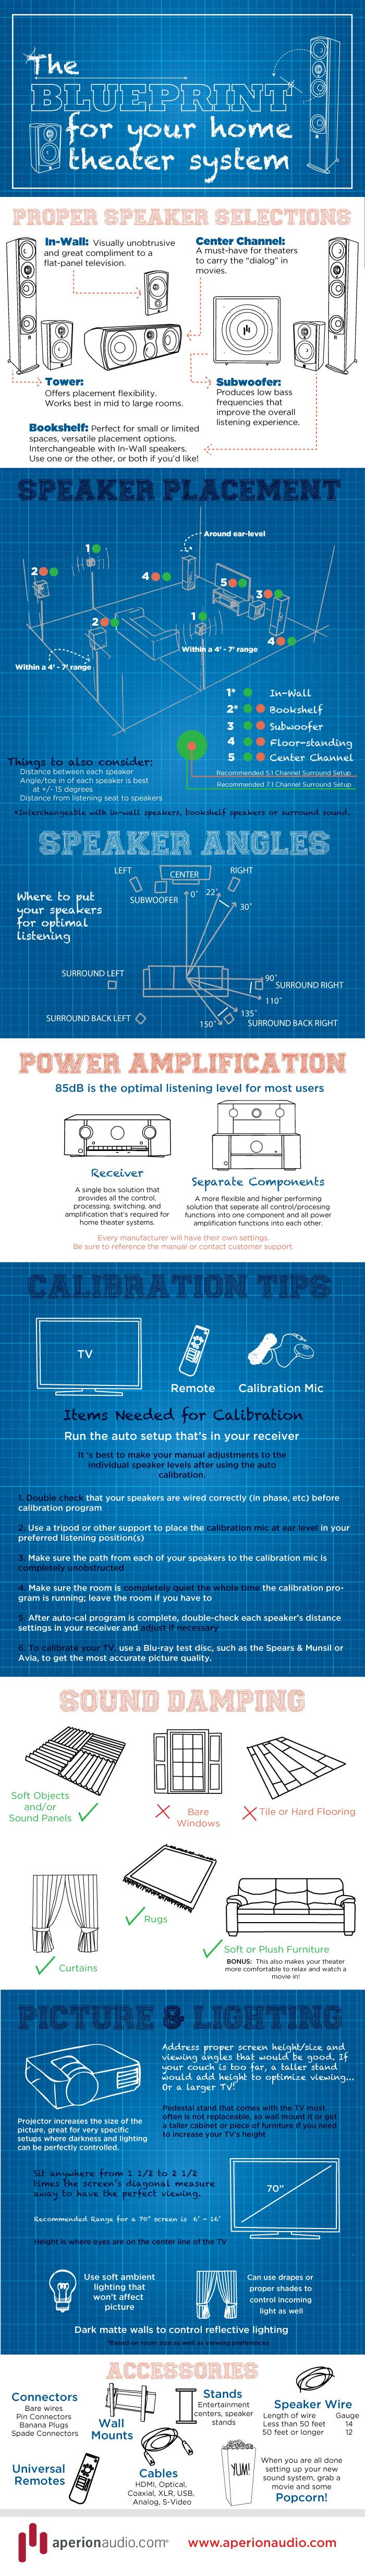 Blueprint for your Home Theater System [Infographic]  http://www.aperionaudio.com/blog/blueprint-for-your-home-theater-system-infographic  #Infographic #HomeTheater #Audio